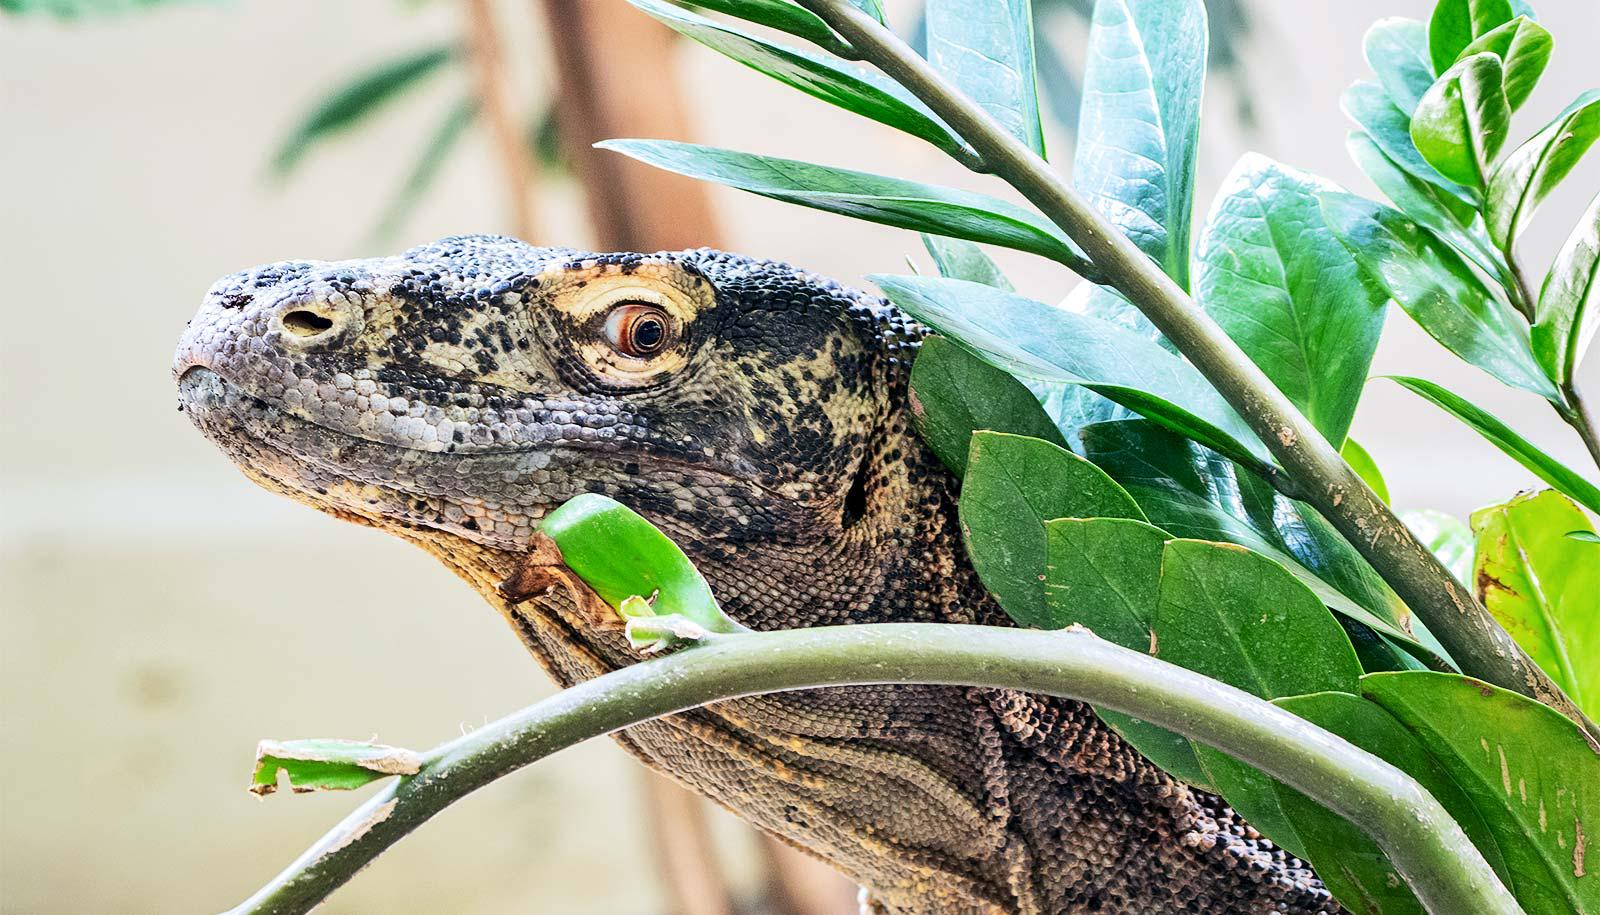 A komodo dragon pokes its head out from behind some leaves, looking over its shoulder